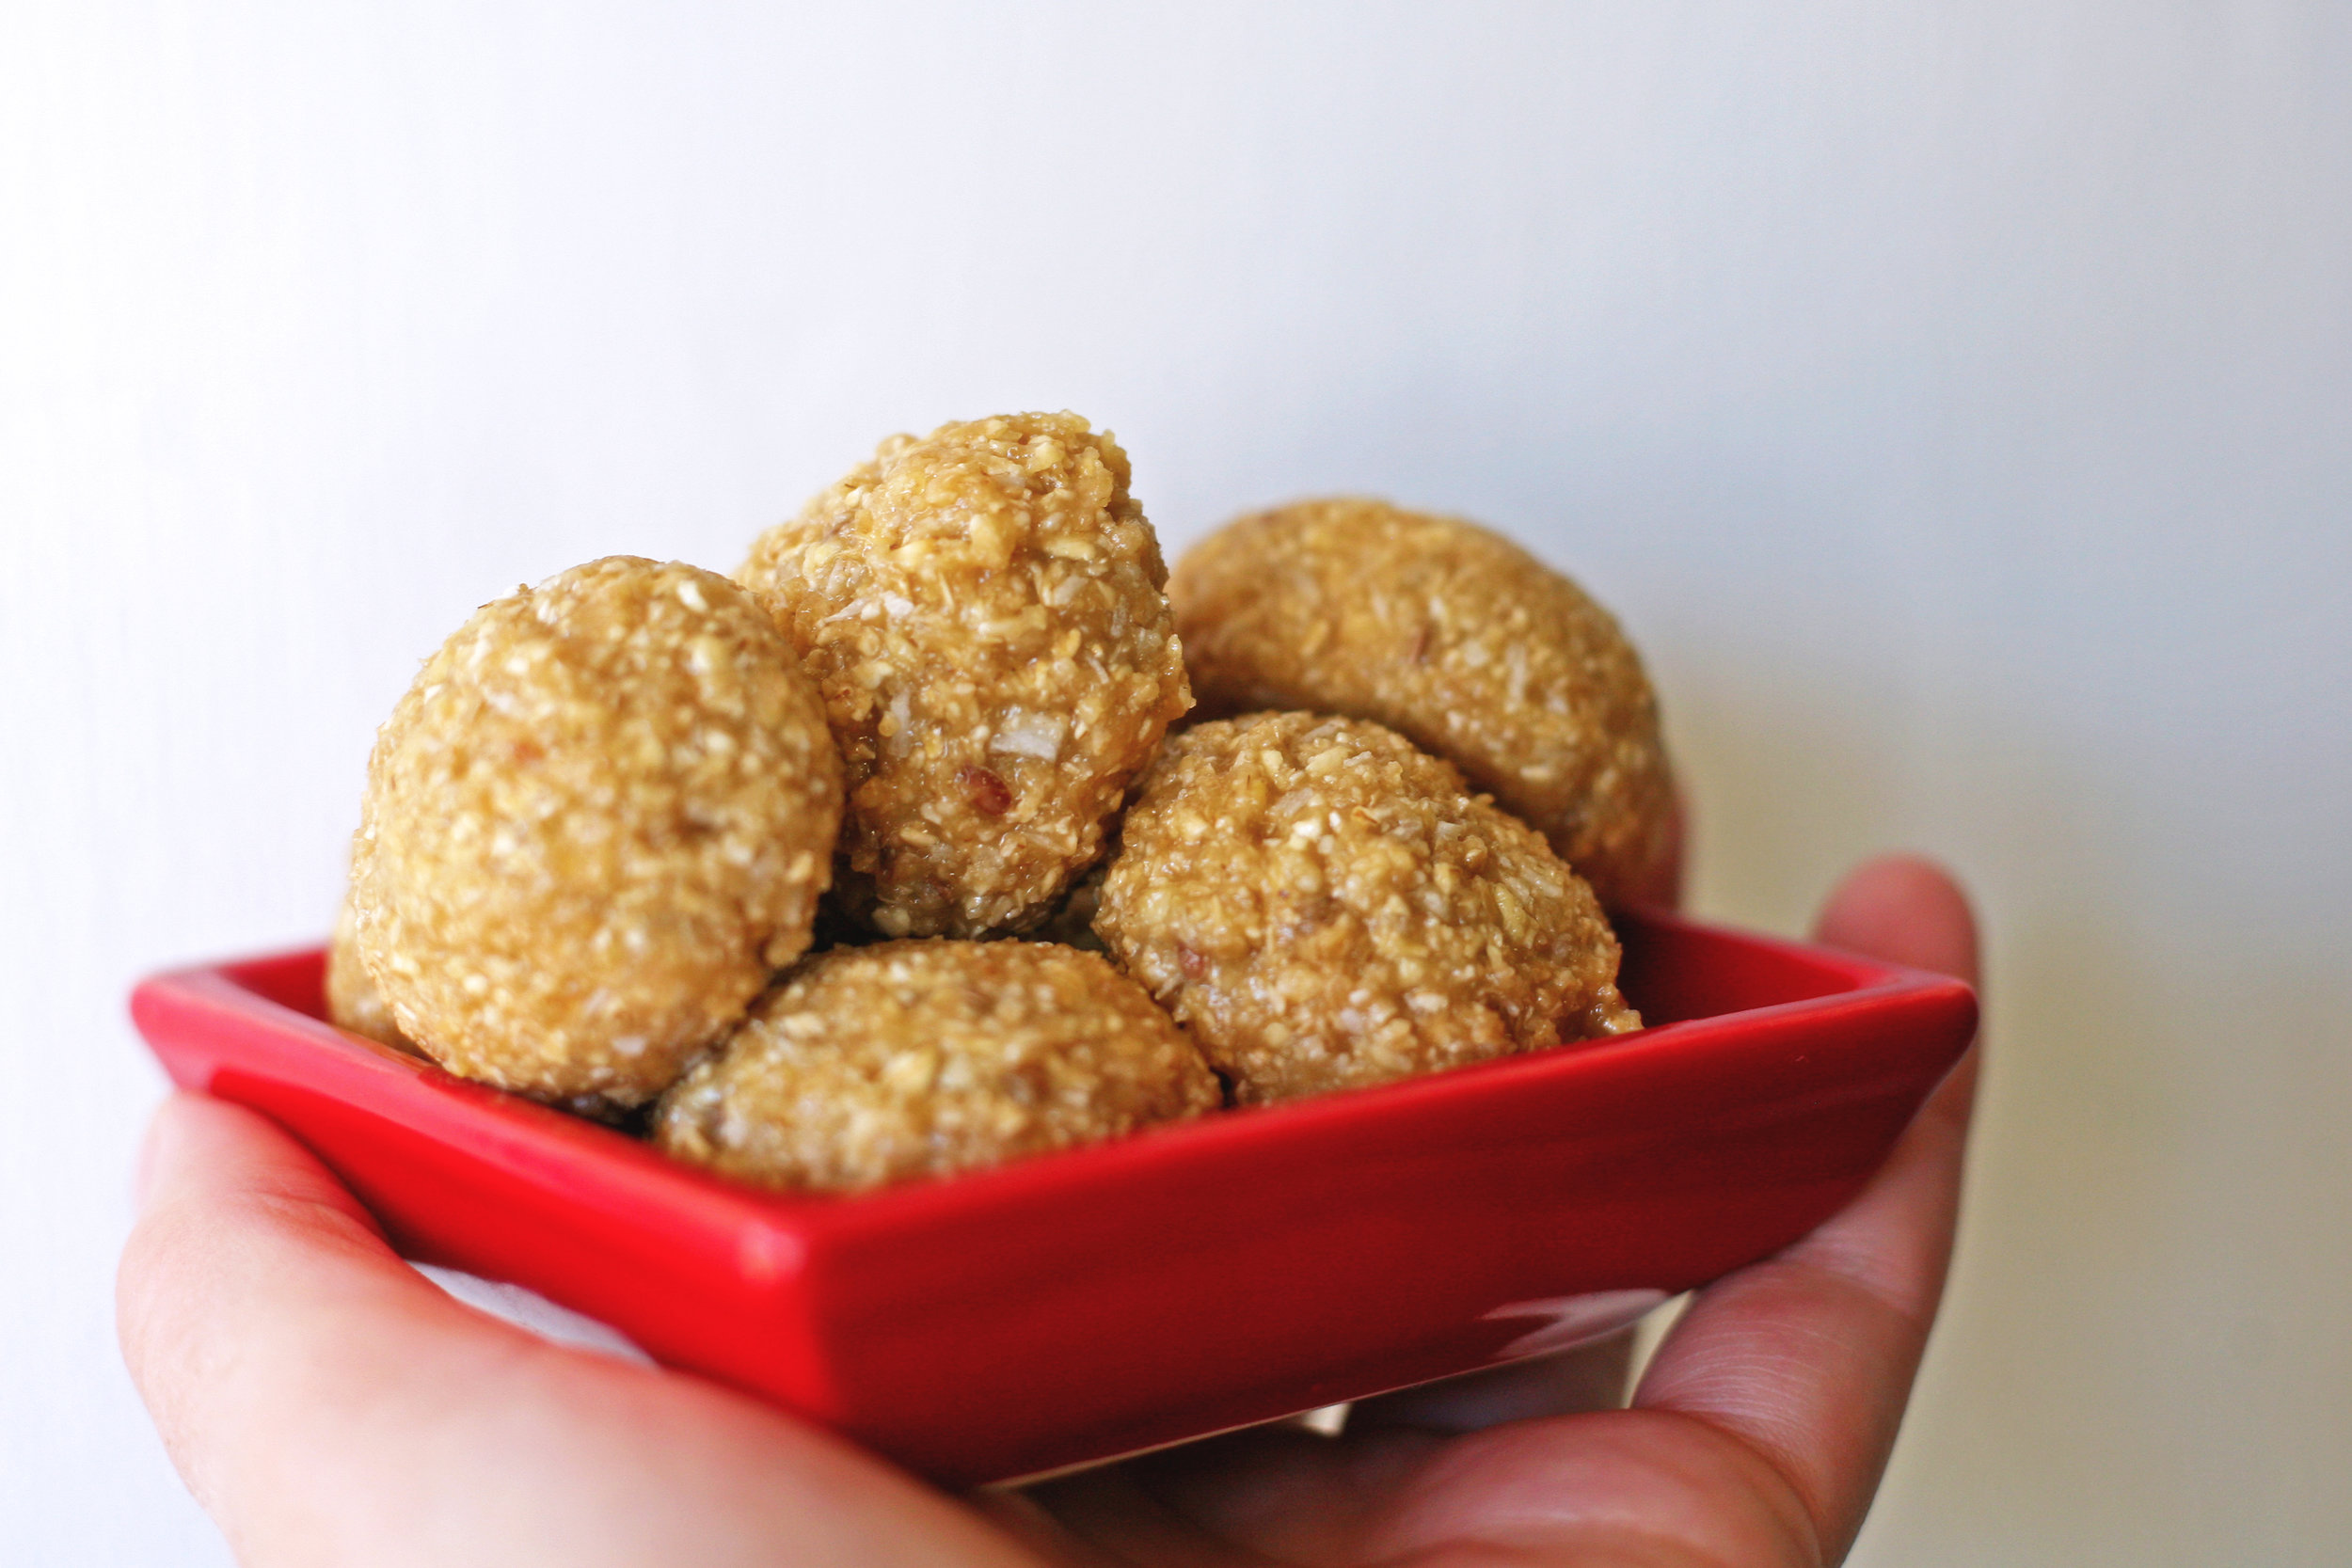 Cashew and peanut butter bites